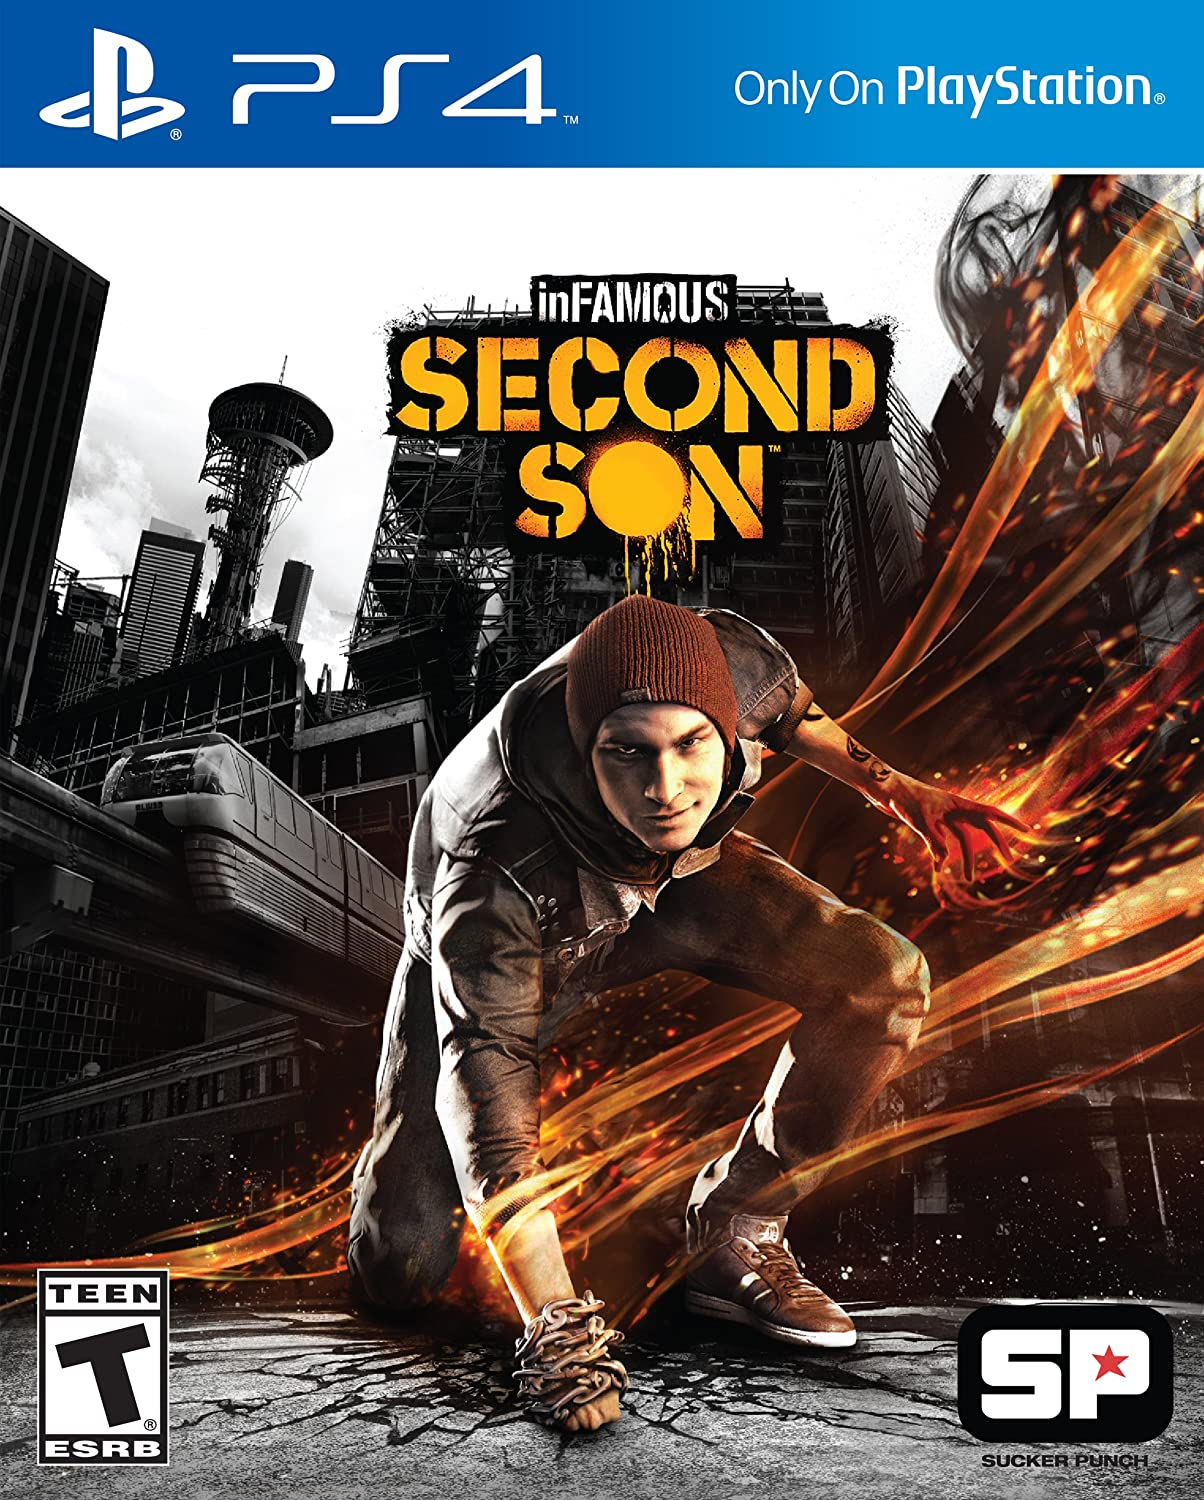 inFAMOUS: Second Son PS4 Amazon Deal